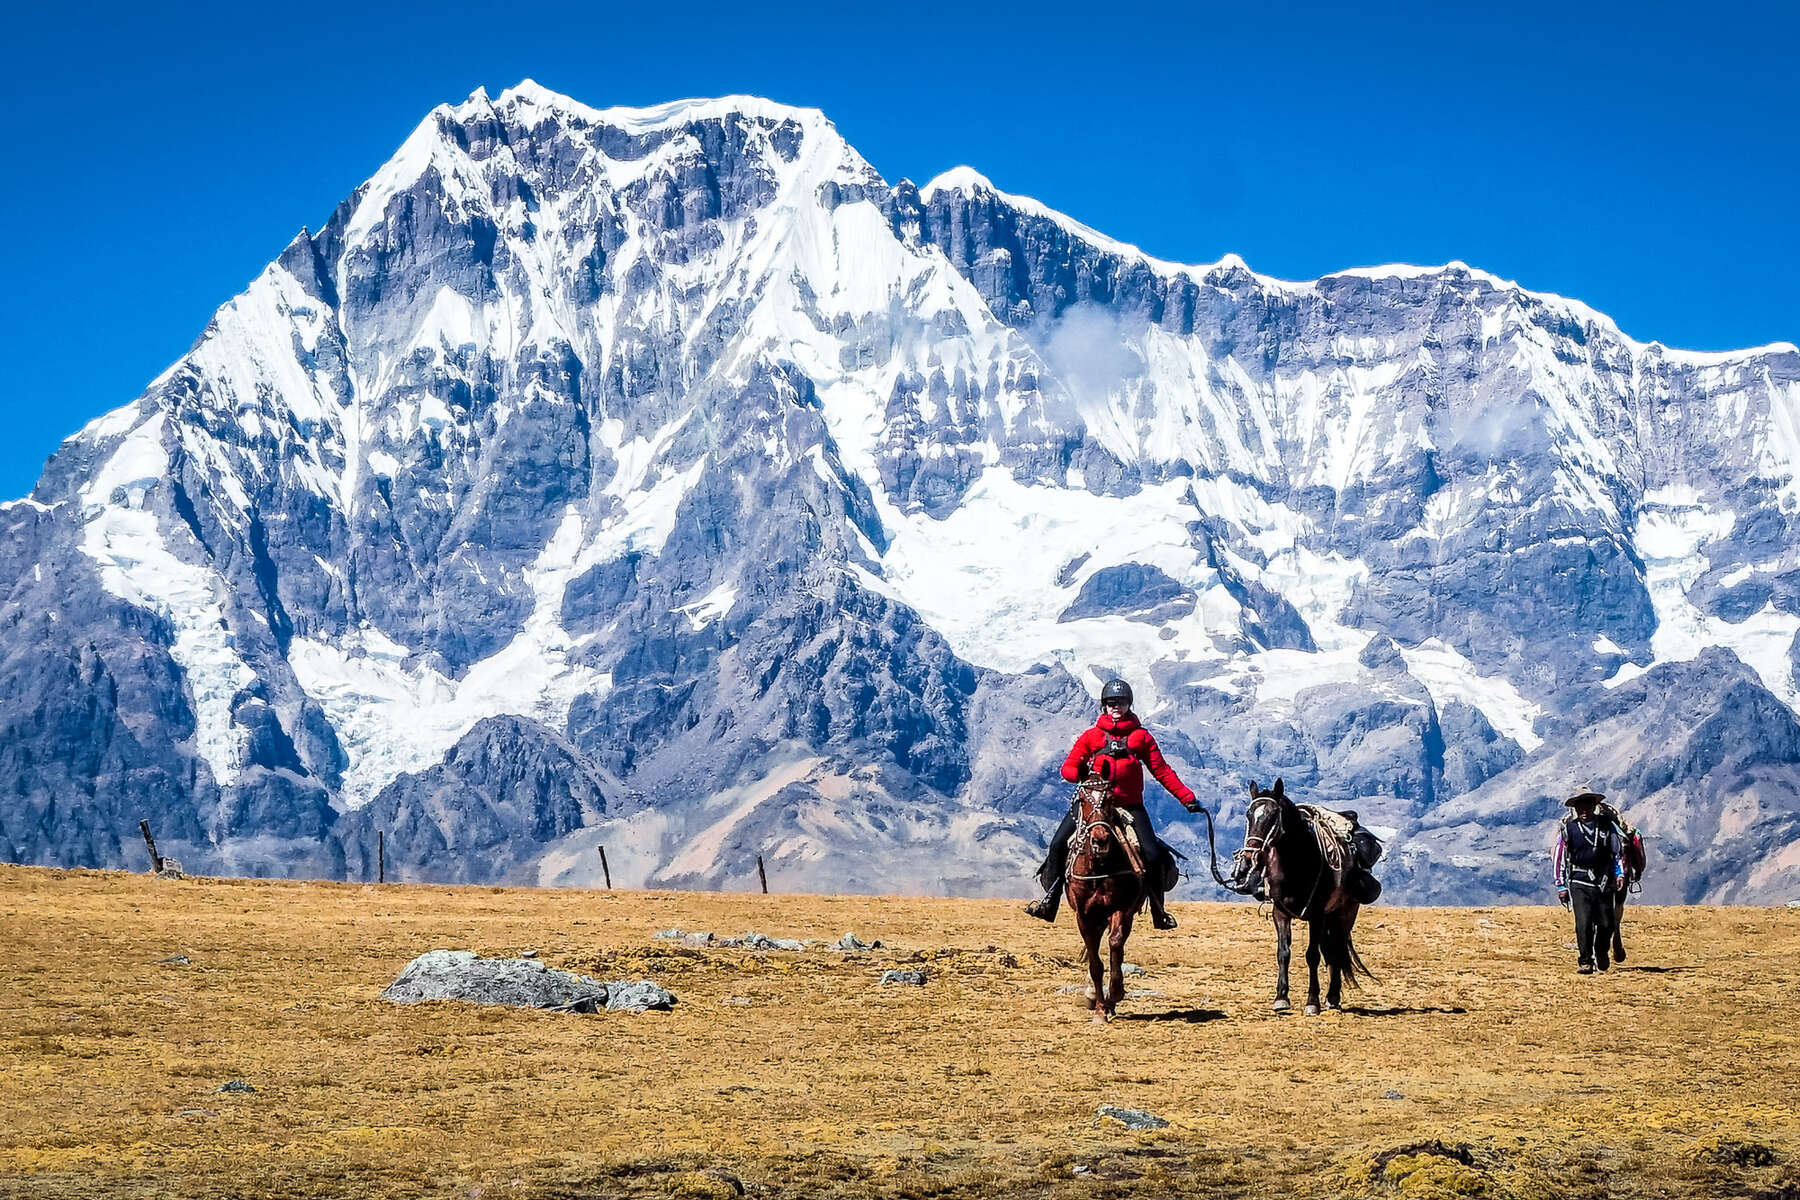 Horseback expedition in the High Inca Trail